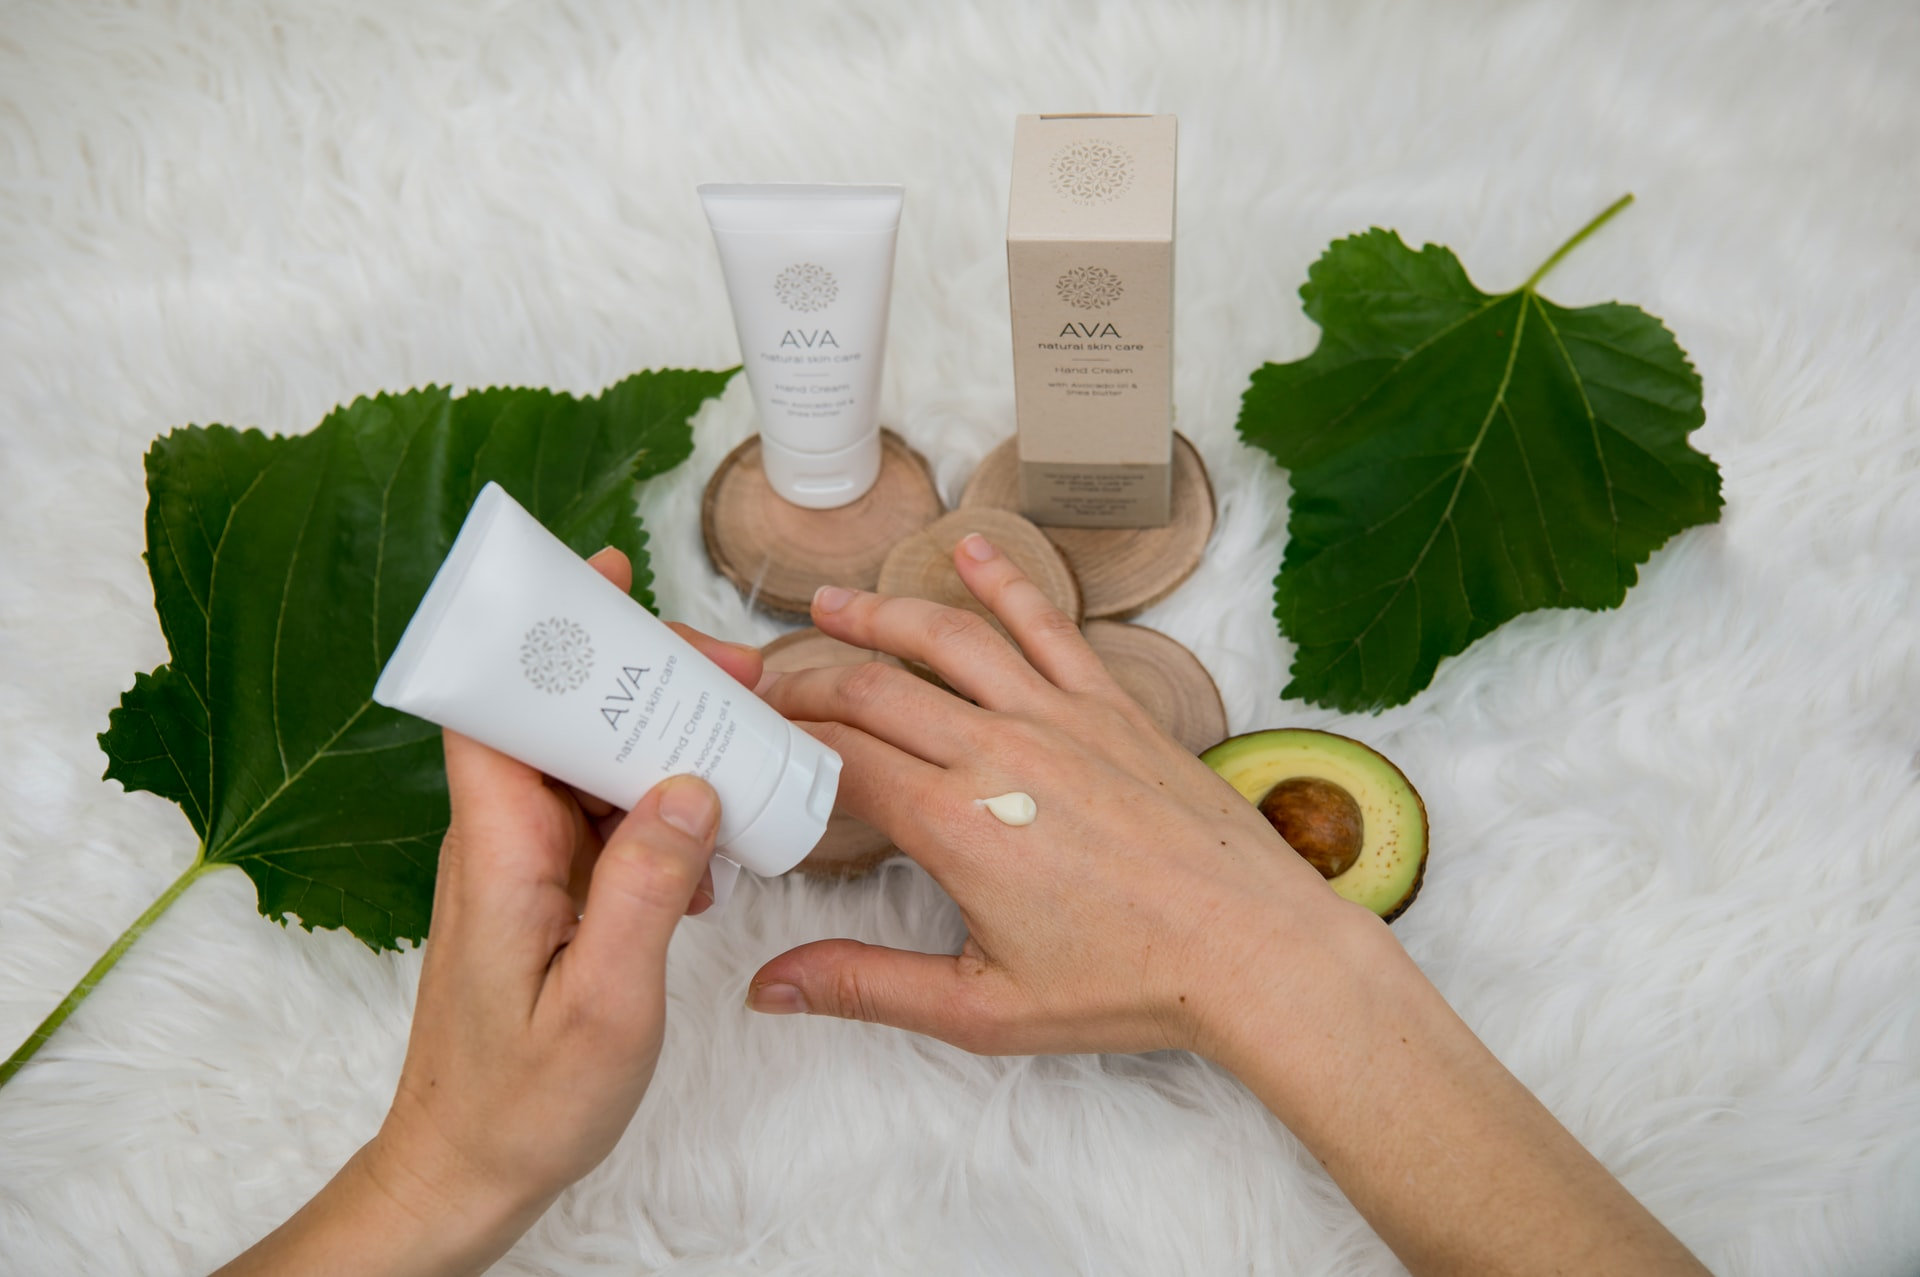 closeup of hands applying skincare product above a selection of skincare products